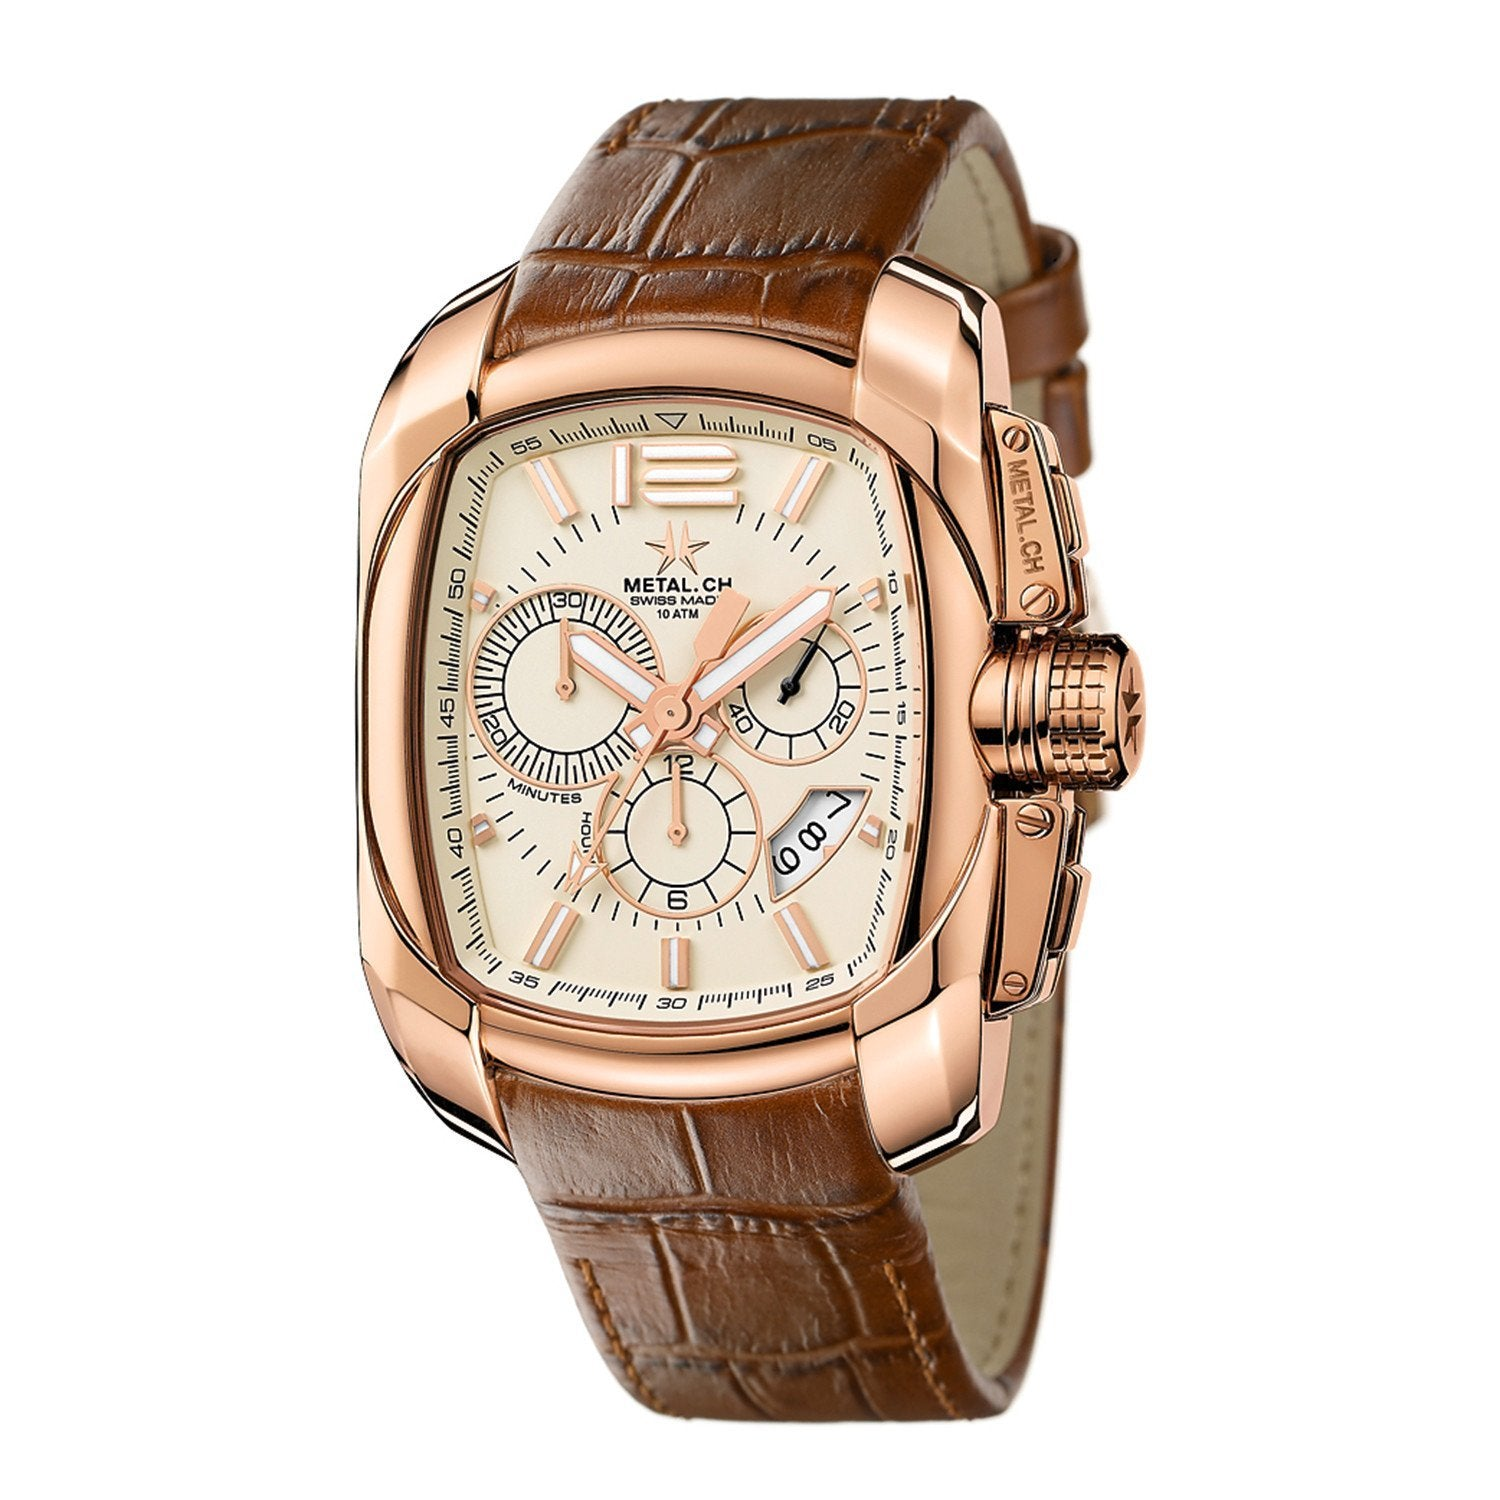 Metal.CH Club Chronograph Date Beige - Watches & Crystals